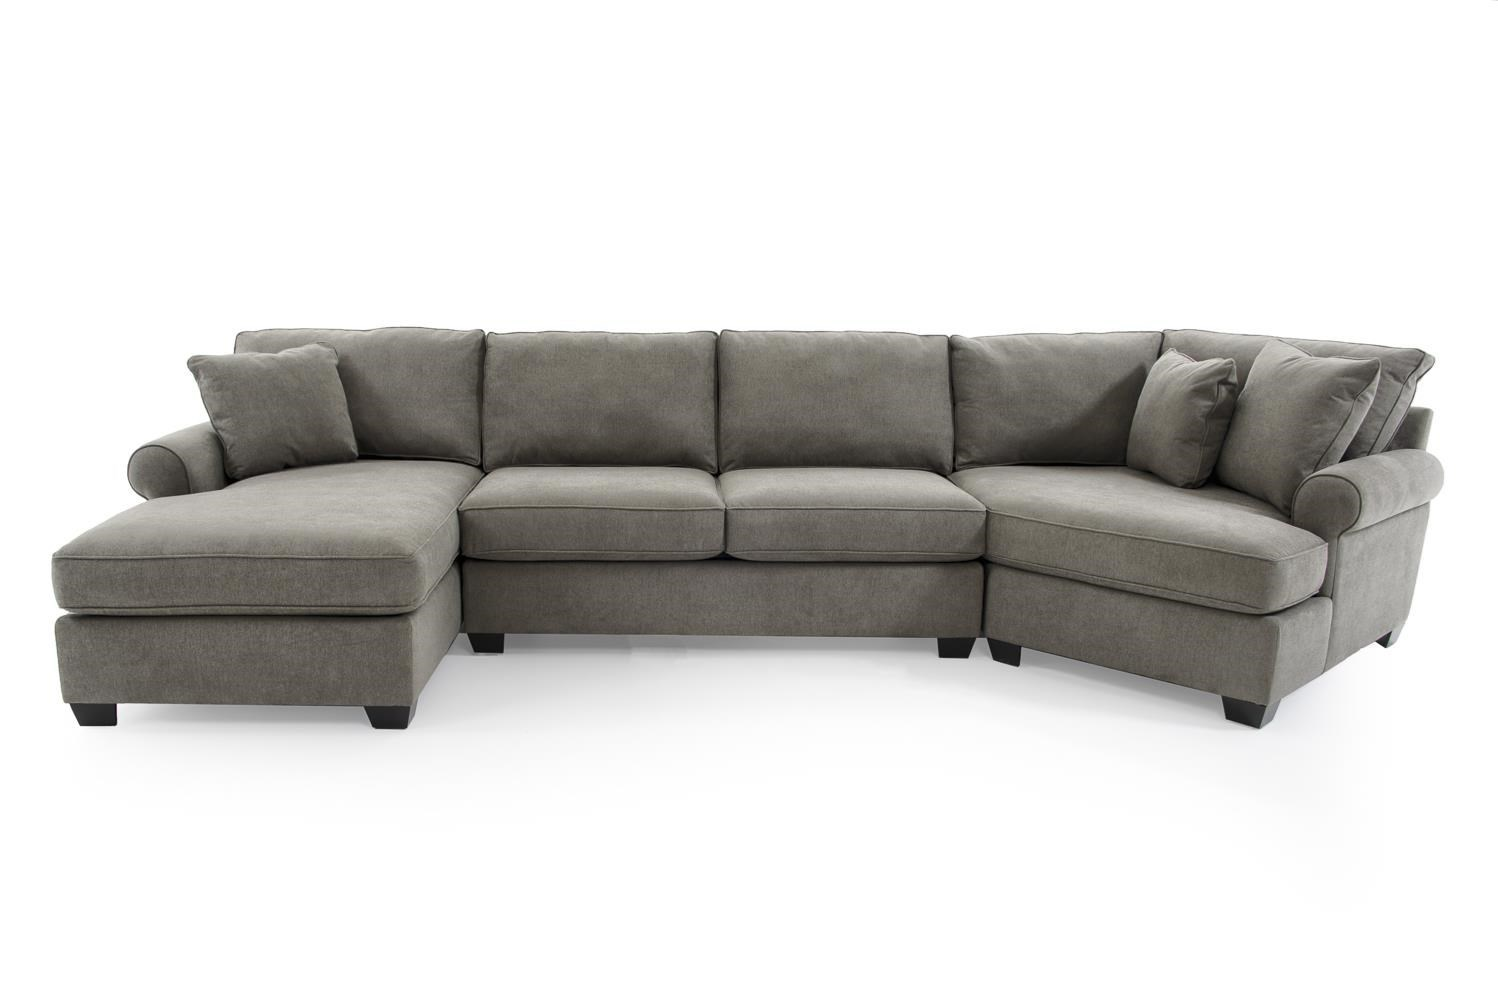 Exceptionnel Max Home Jessica3 Pc Sectional Sofa ...